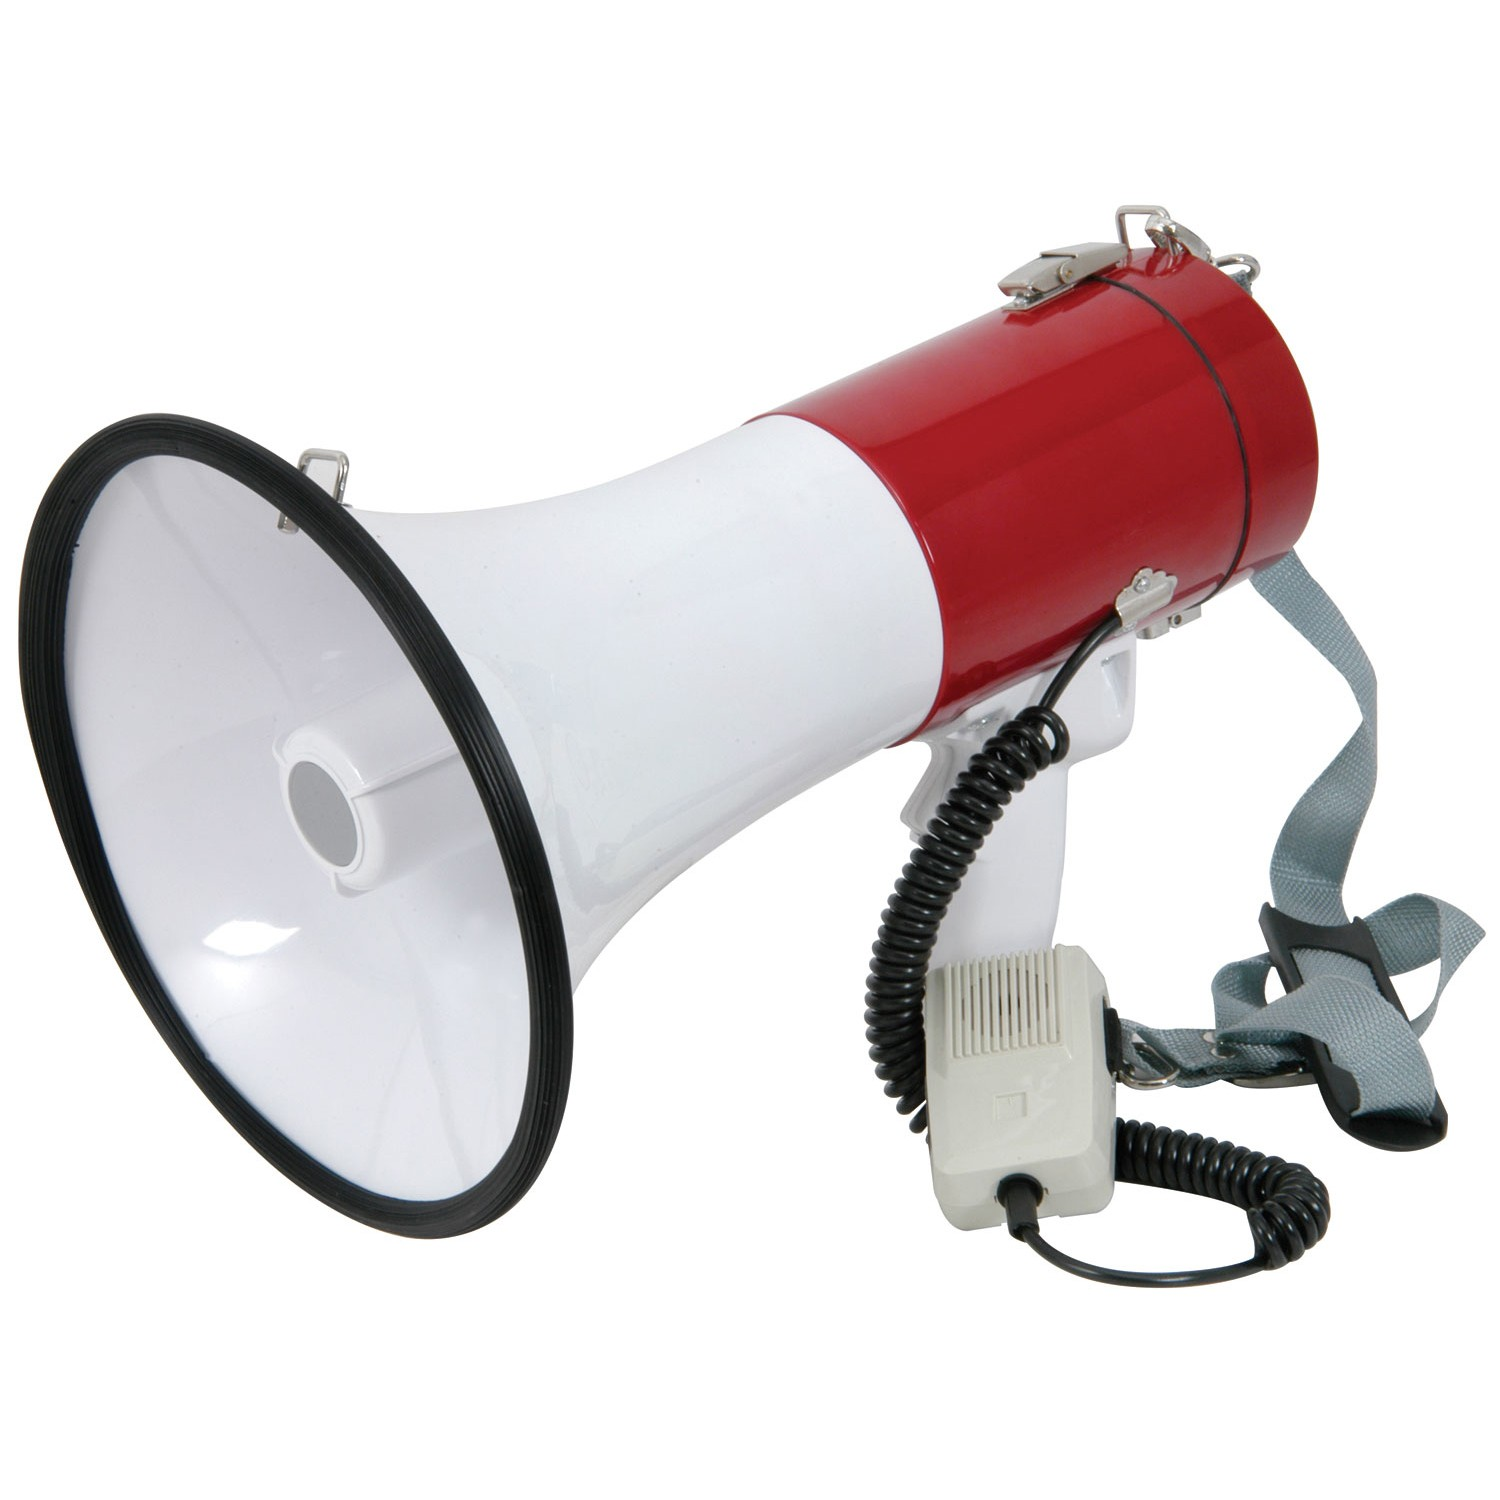 MG-220D 30w entry level megaphone with siren